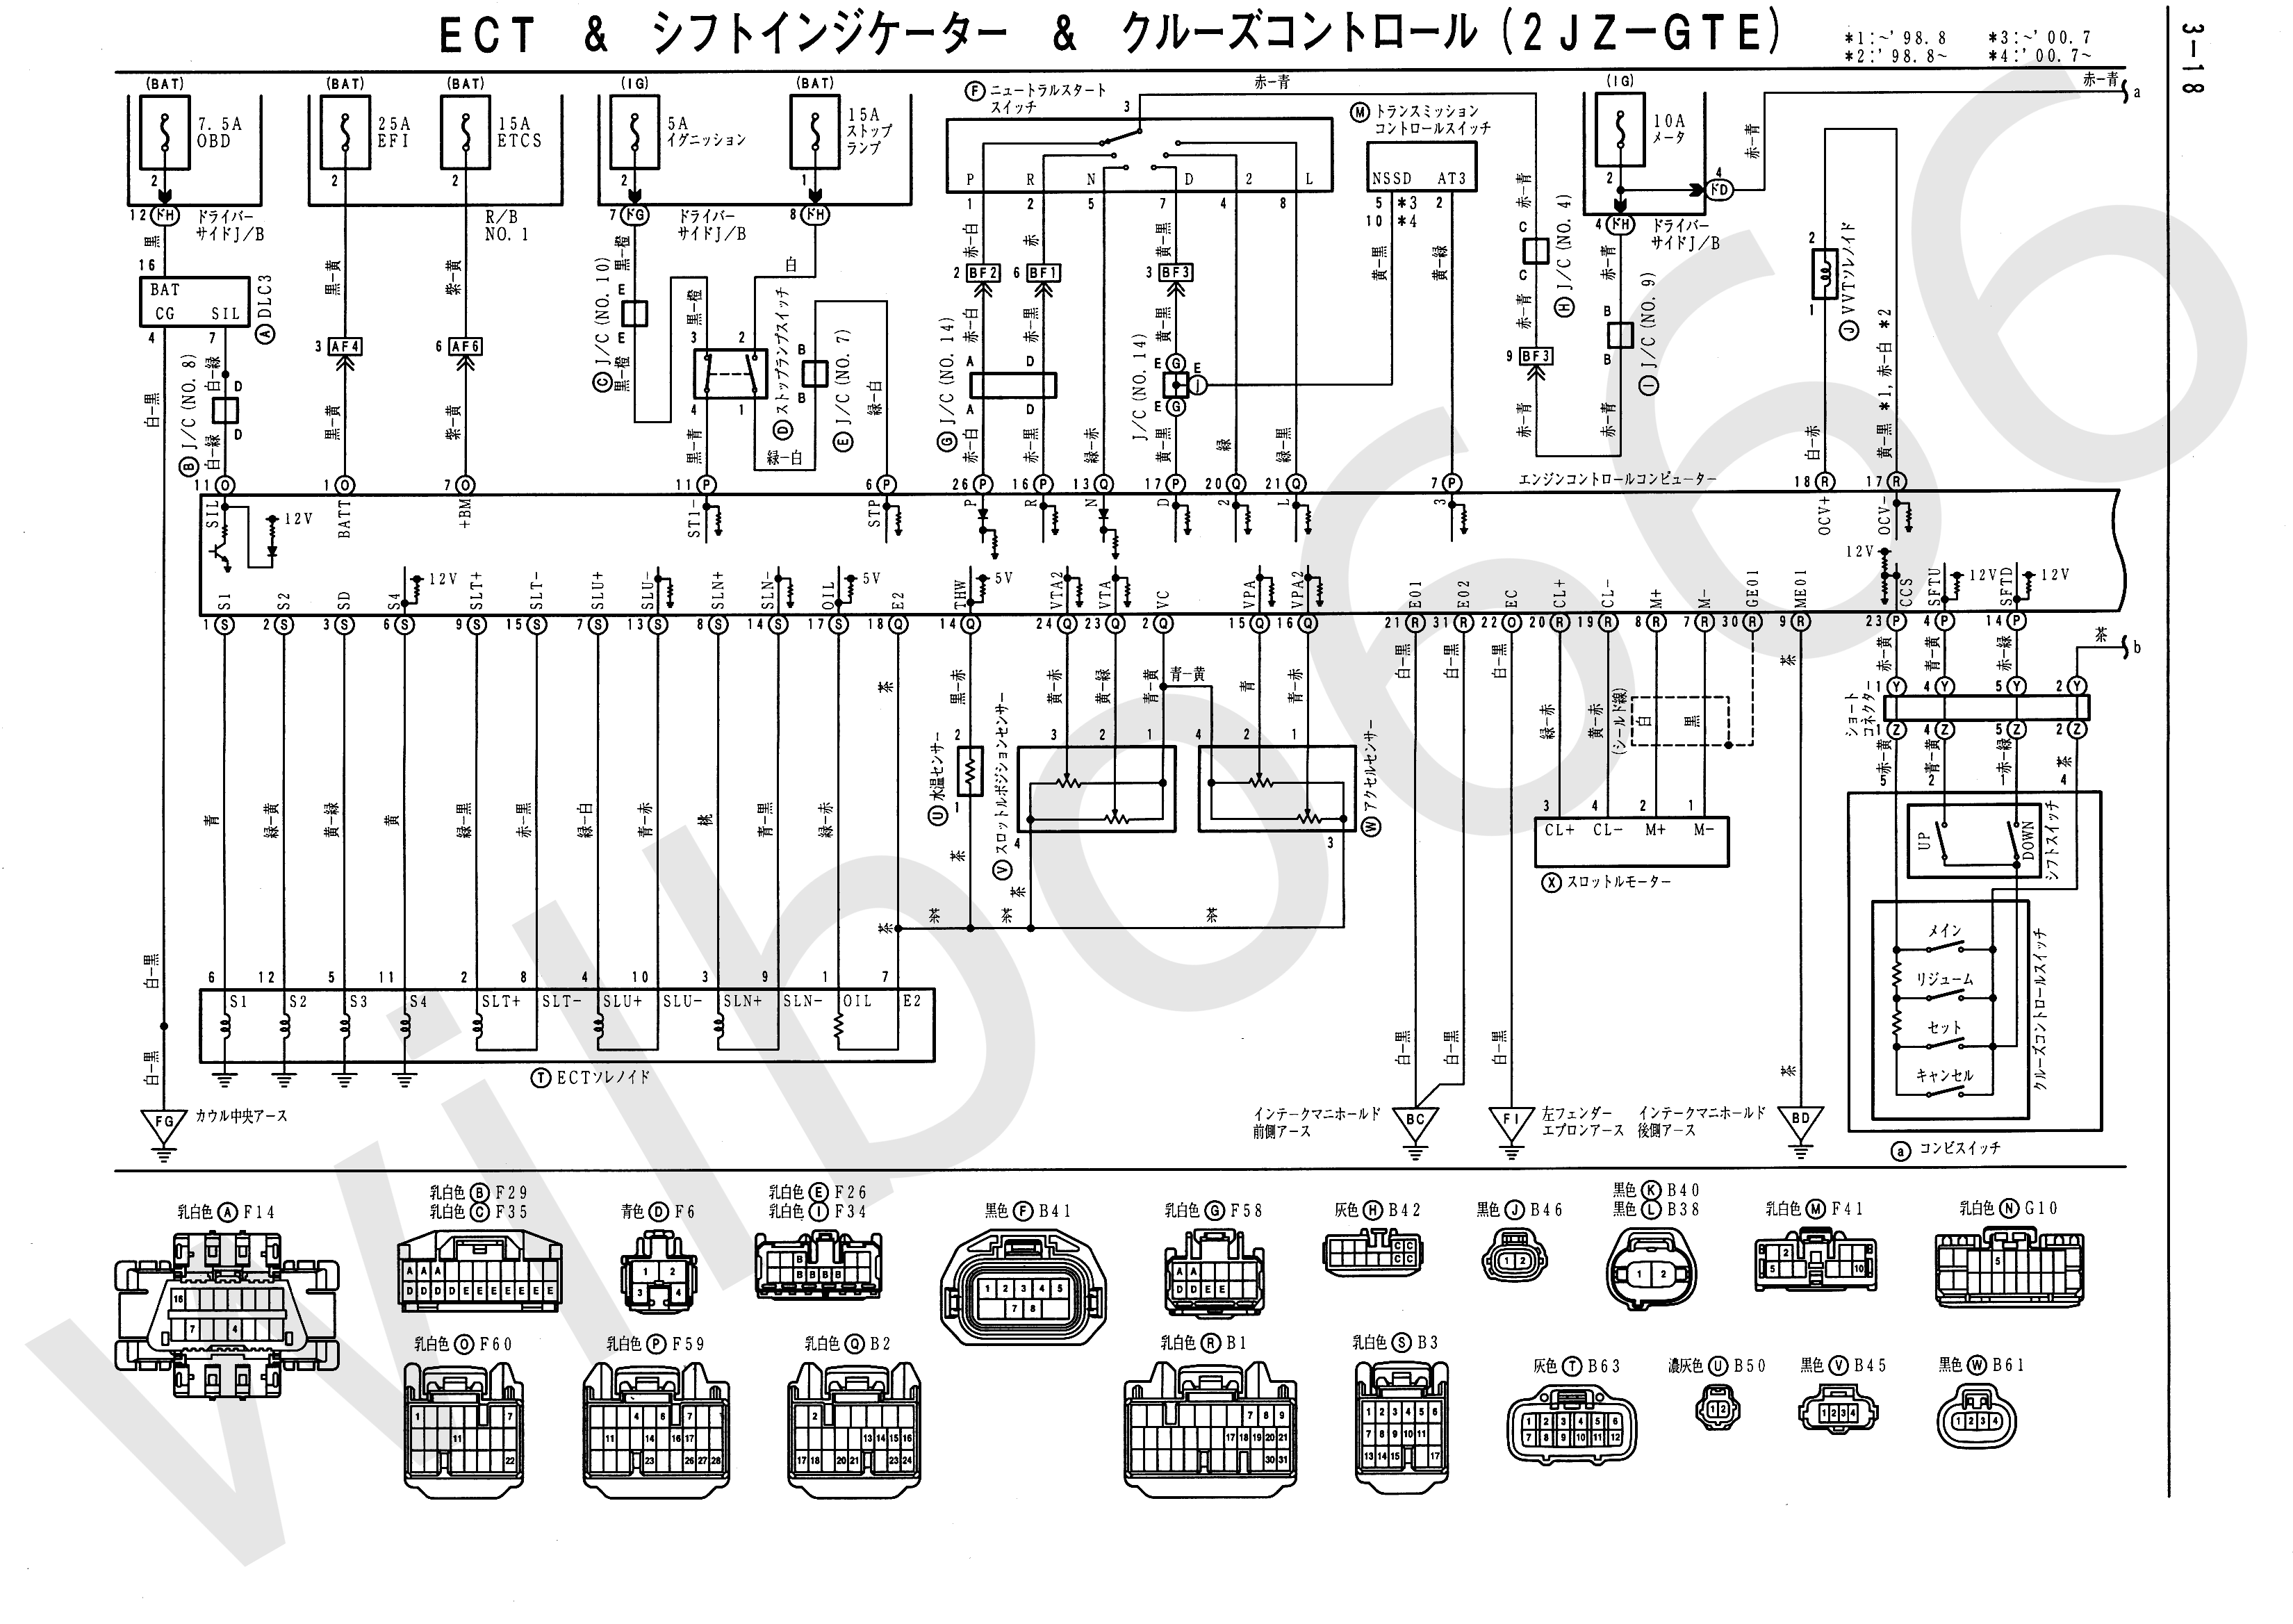 2jz Gte Wiring Harness Pin 45b - Wiring Diagram Img Bat Wiring Diagrams on pinout diagrams, led circuit diagrams, series and parallel circuits diagrams, sincgars radio configurations diagrams, switch diagrams, friendship bracelet diagrams, motor diagrams, engine diagrams, honda motorcycle repair diagrams, troubleshooting diagrams, internet of things diagrams, gmc fuse box diagrams, lighting diagrams, smart car diagrams, battery diagrams, hvac diagrams, electrical diagrams, electronic circuit diagrams, transformer diagrams,